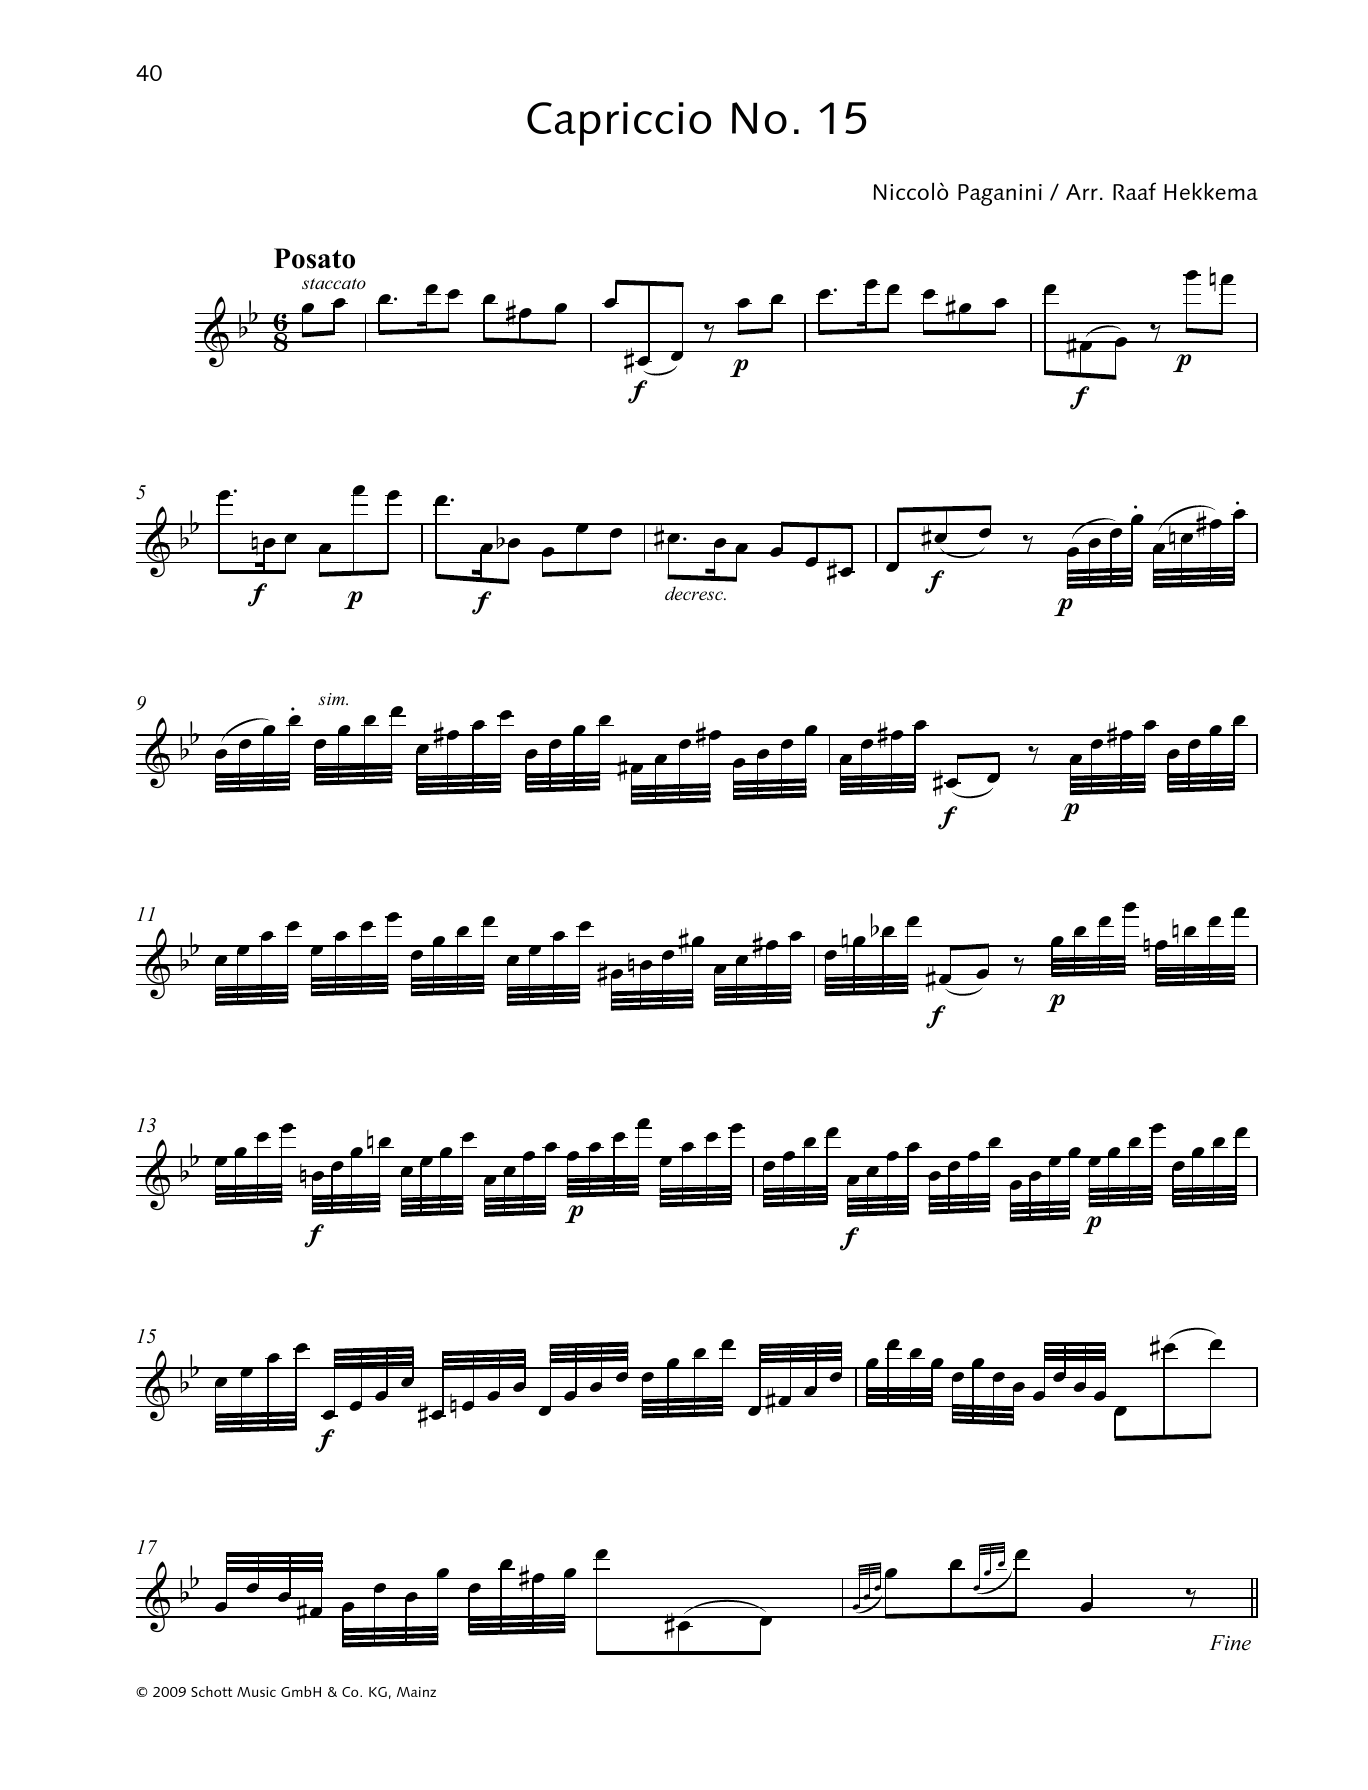 Capriccio No. 15 Sheet Music